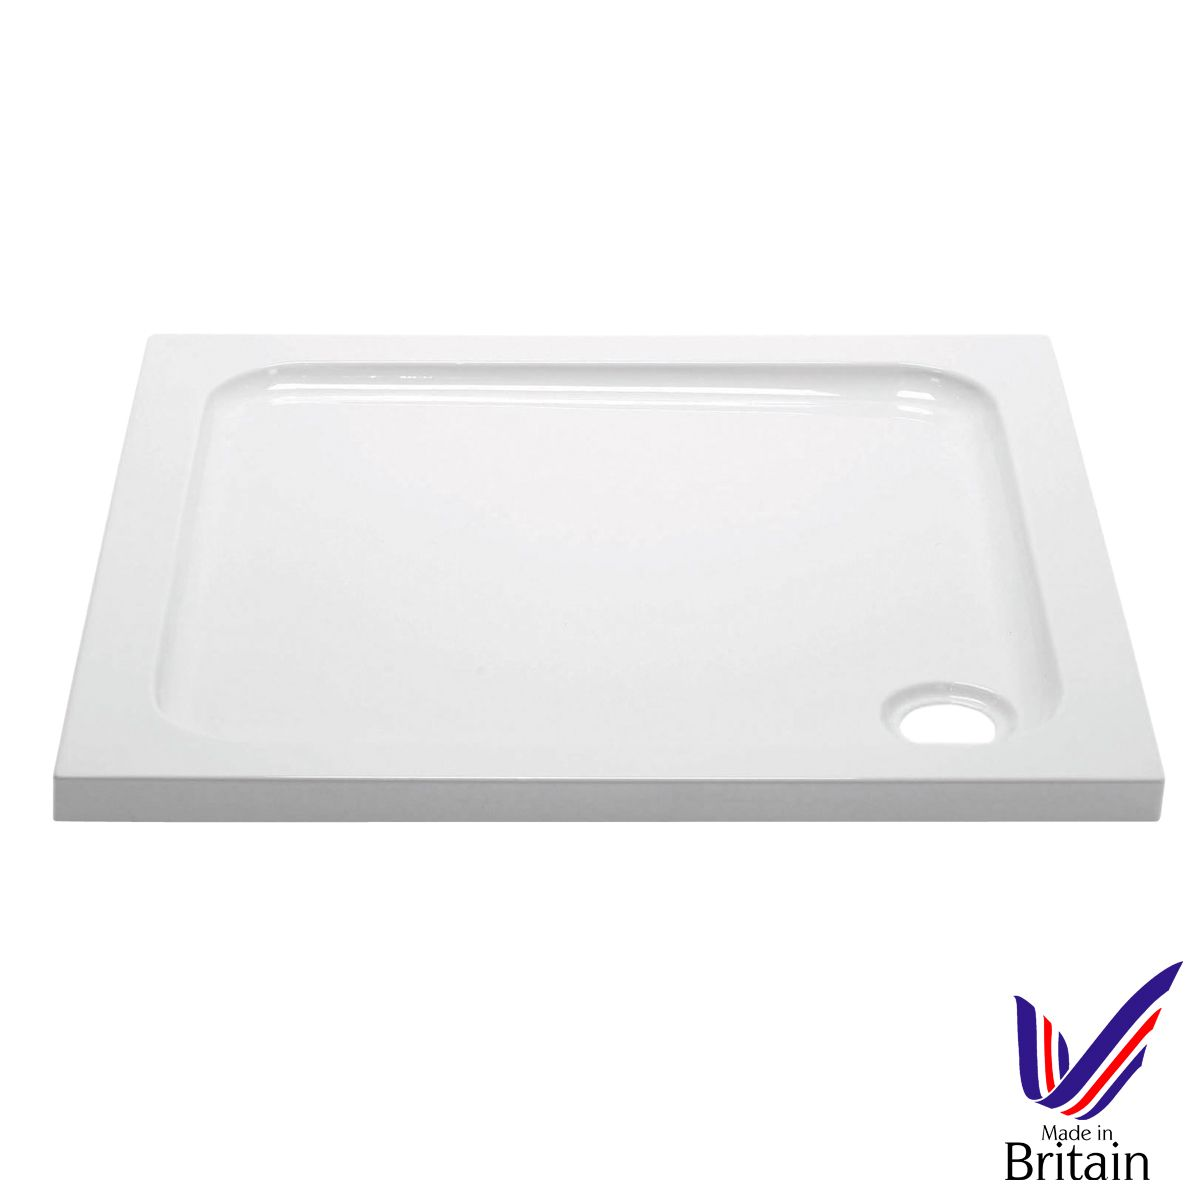 April Square 700 x 700 Shower Tray